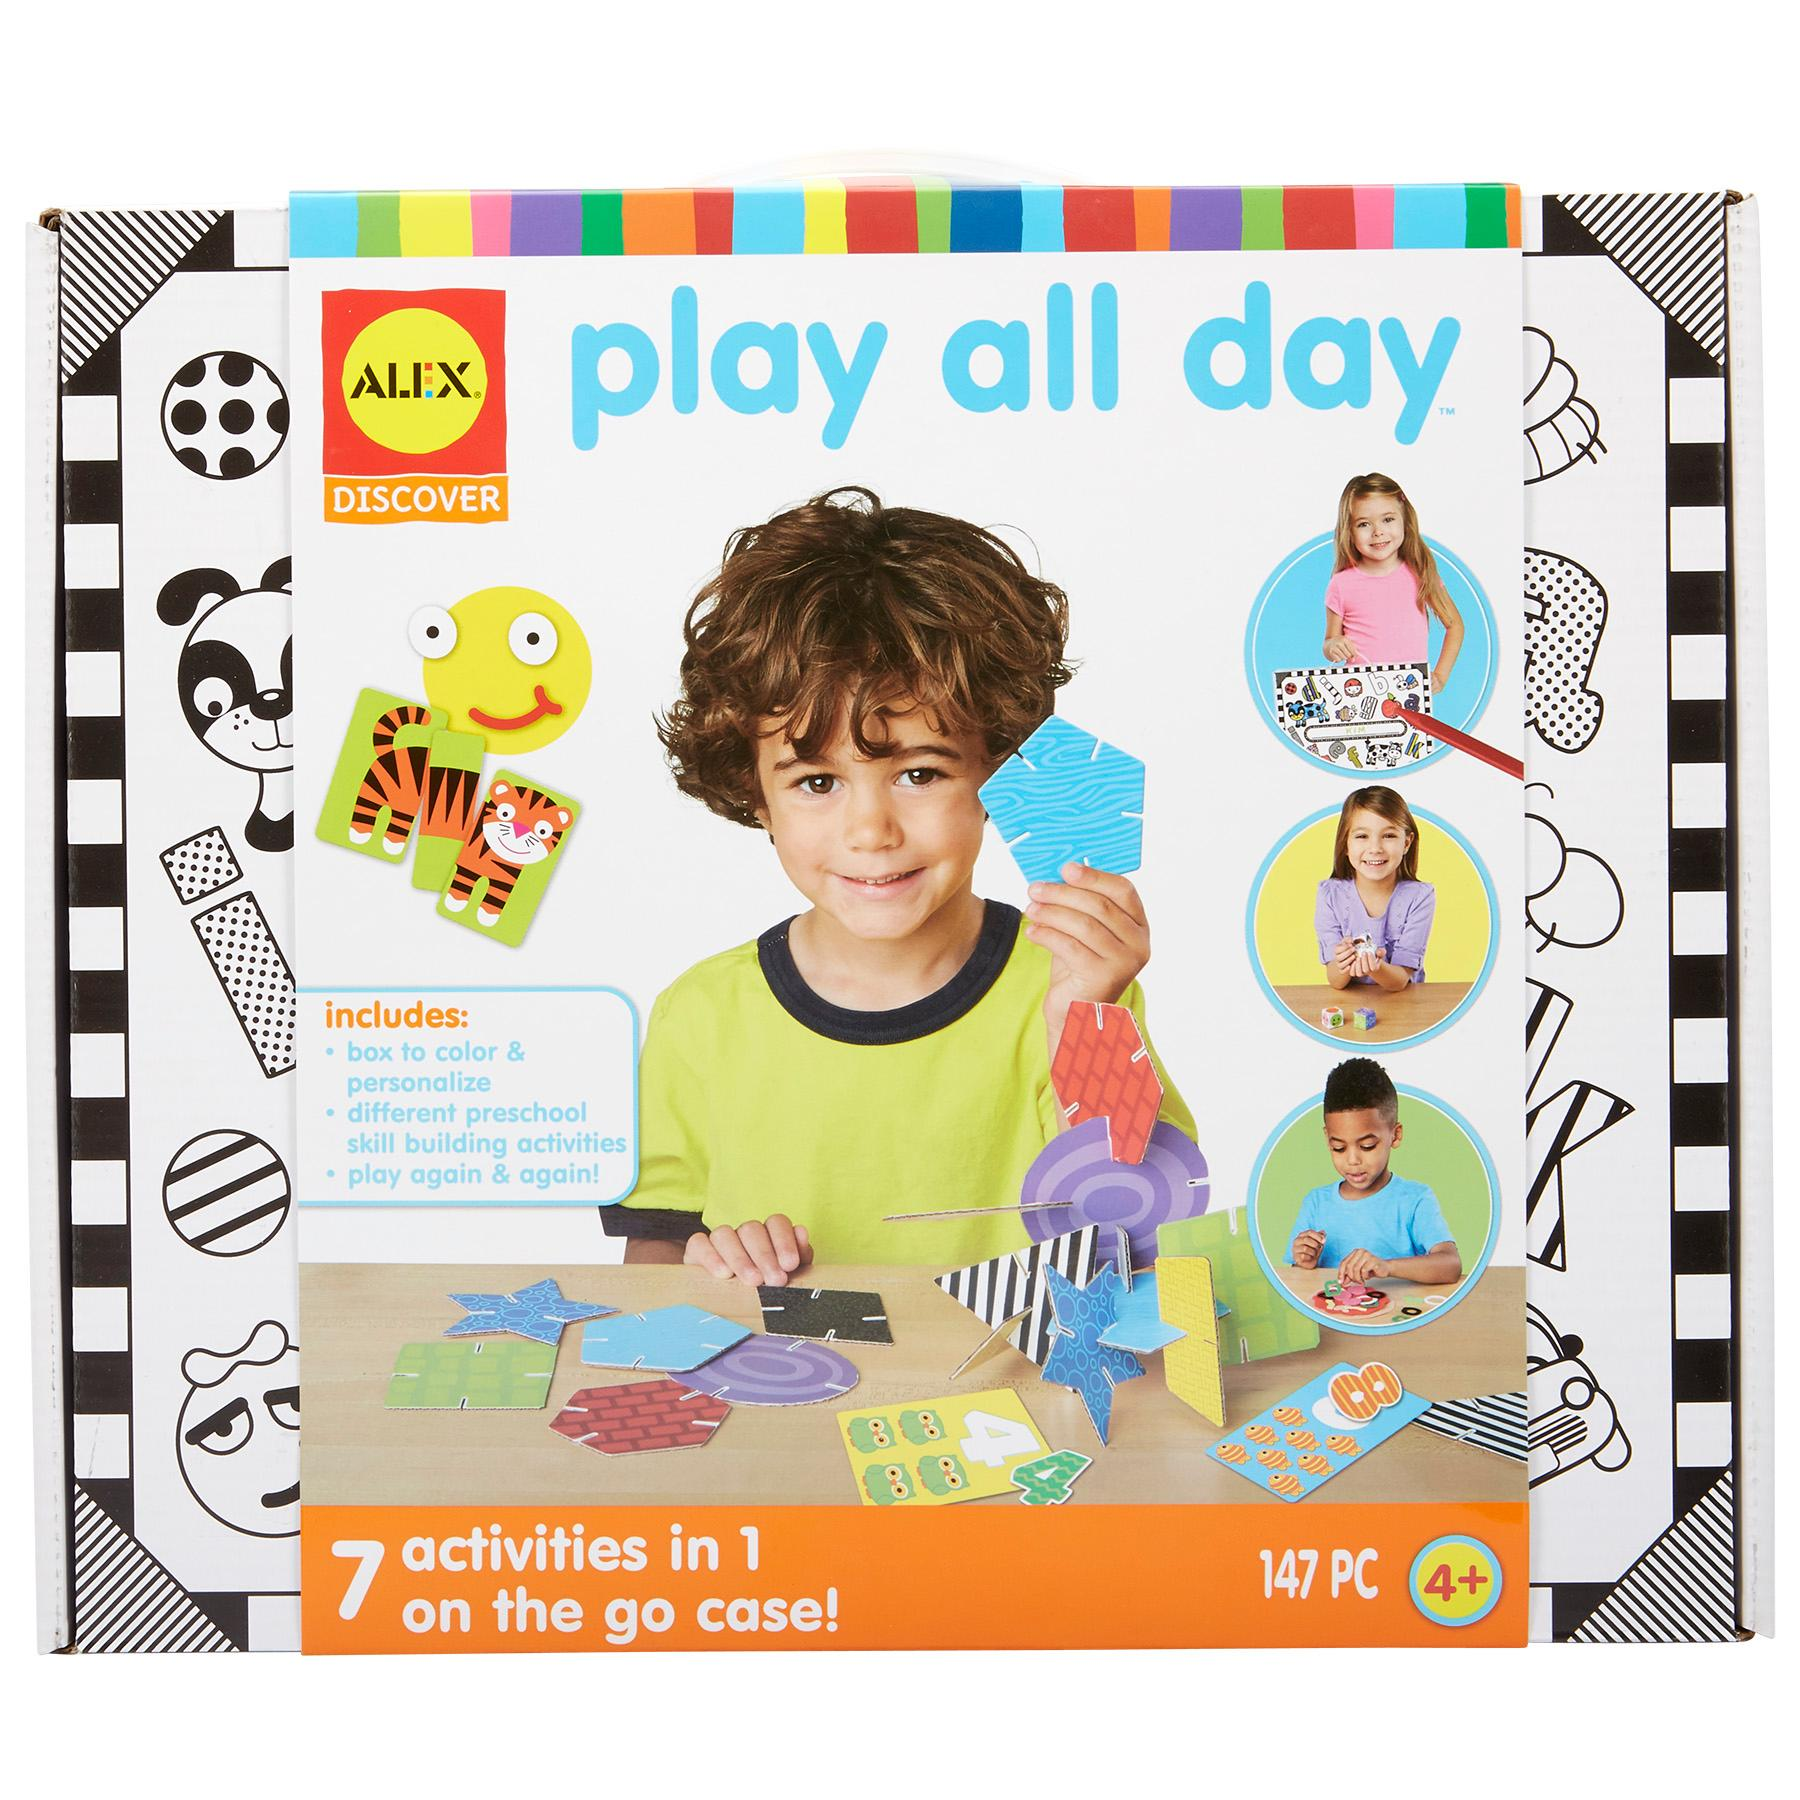 Amazon Com Alex Discover Play All Day Learning Kit Toys Games